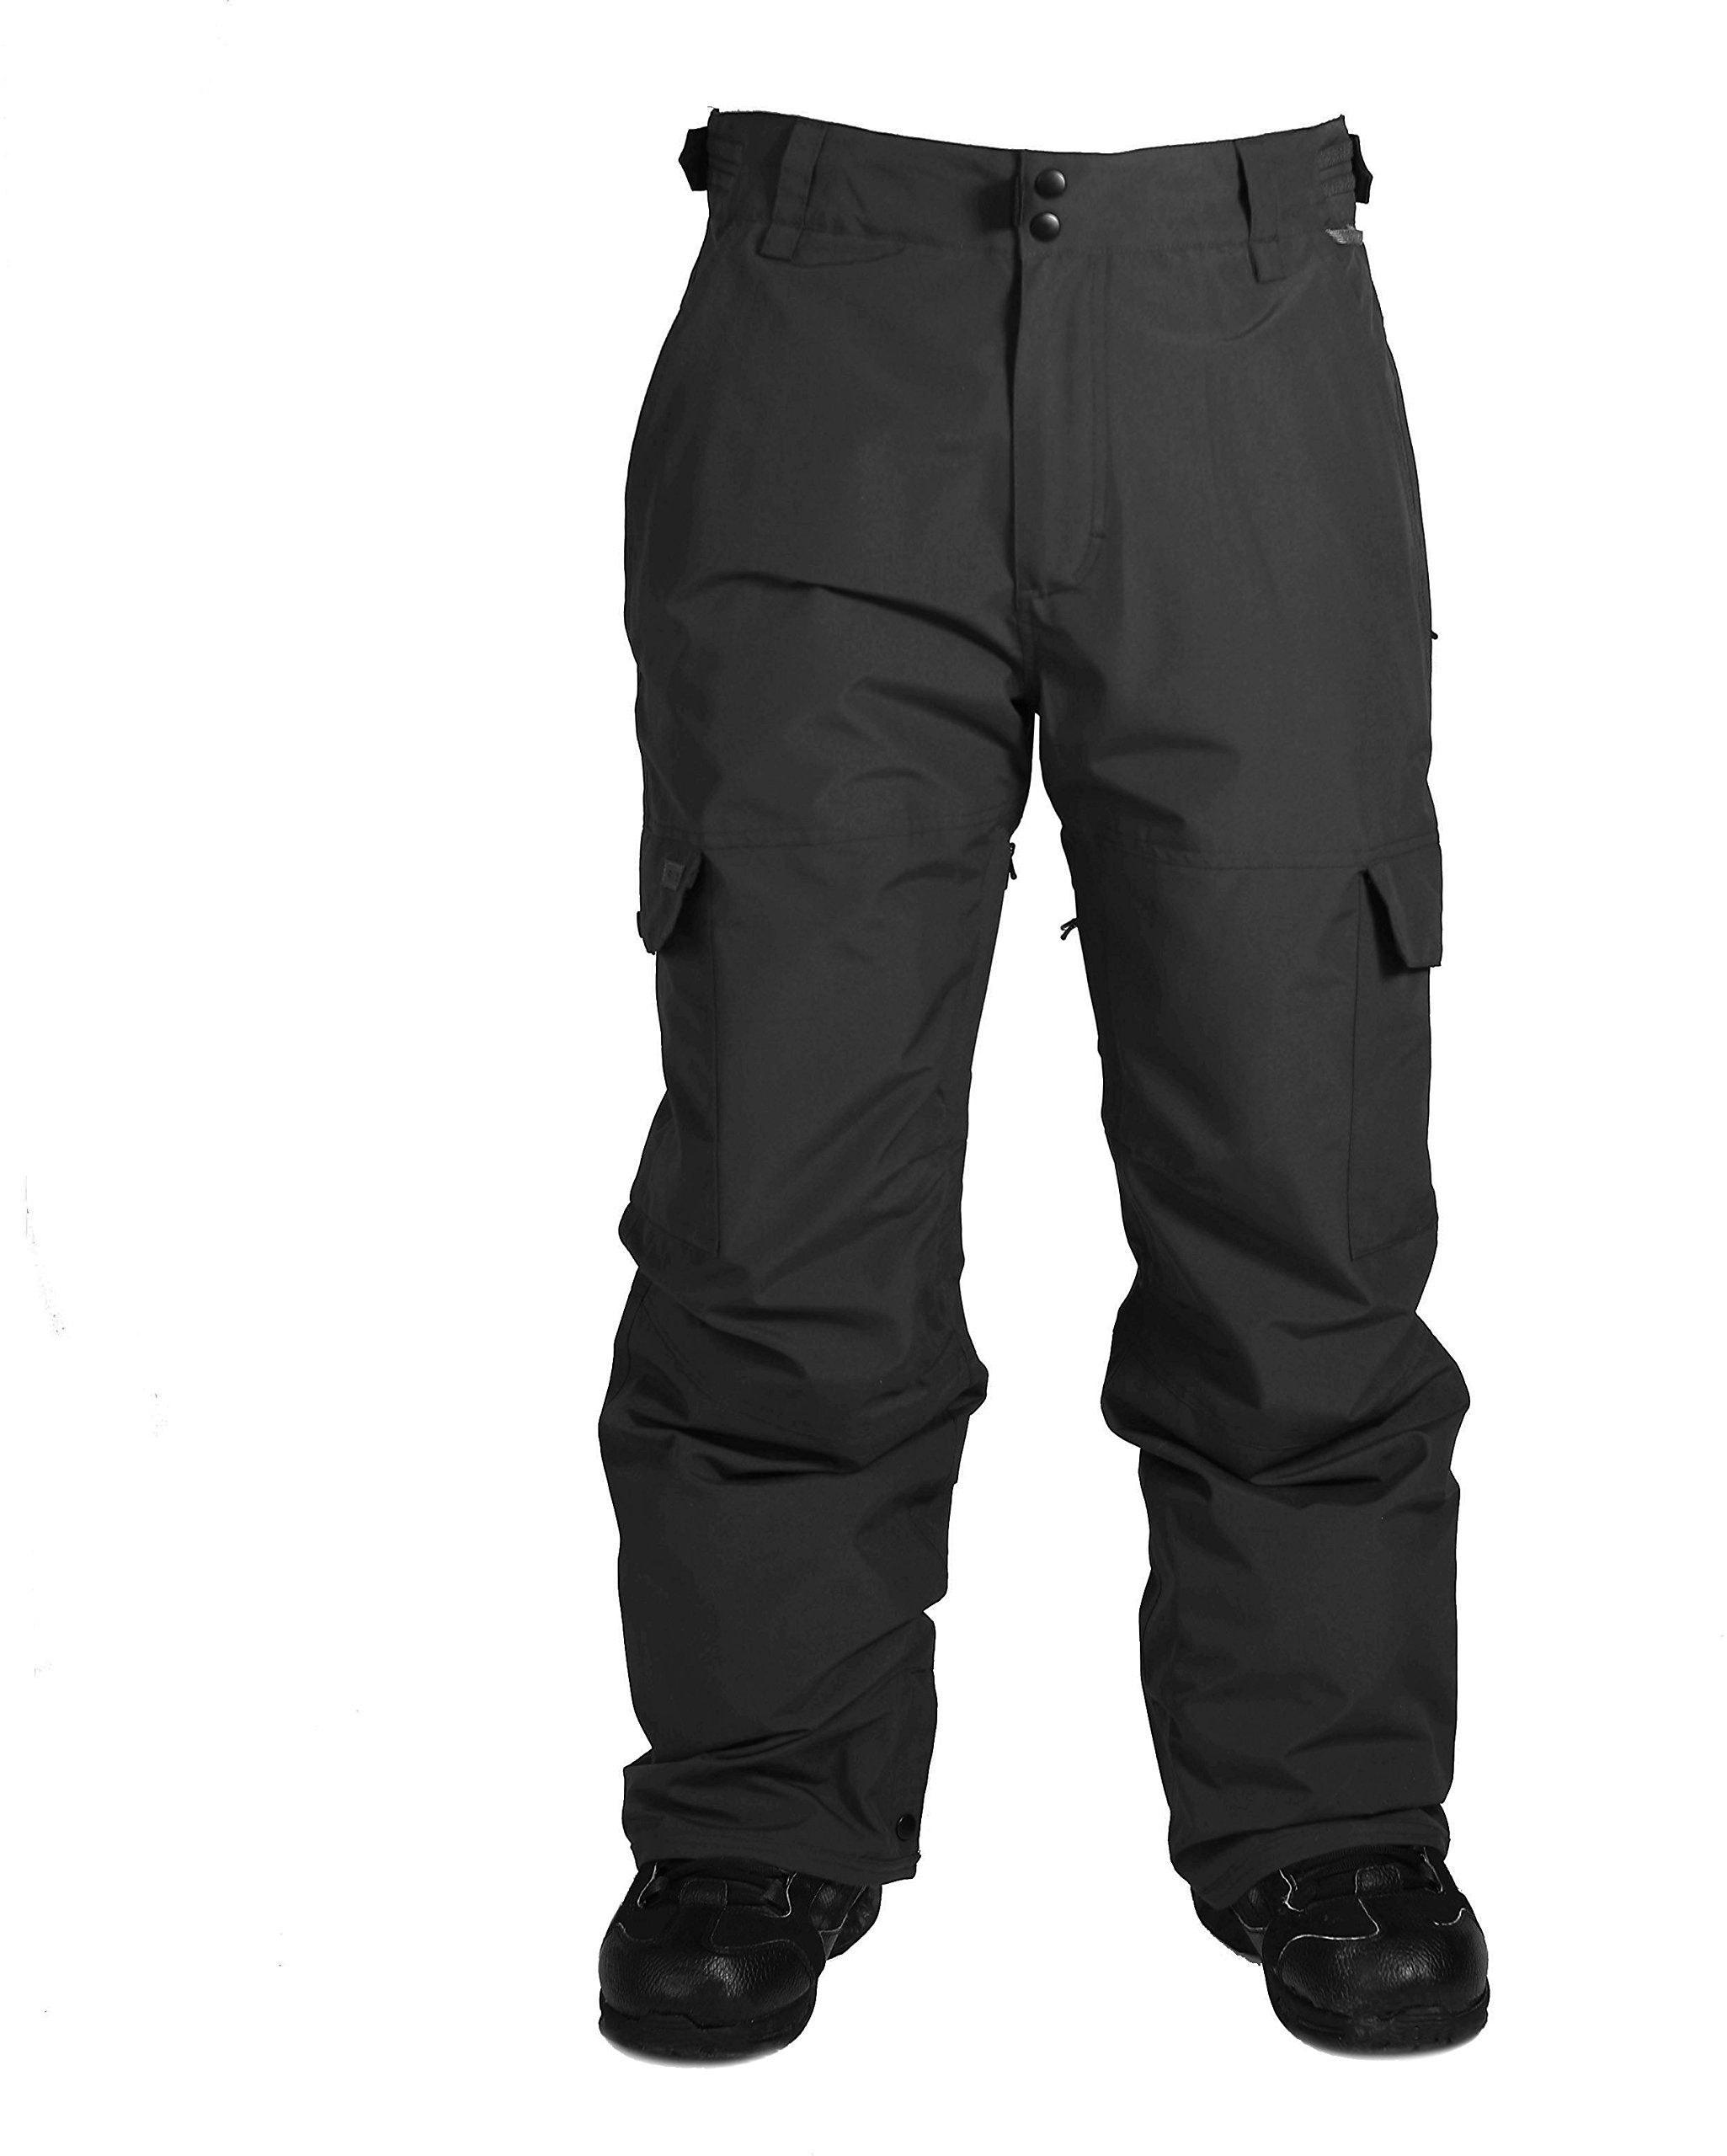 Ride Snowboard Outerwear Men's Phinney Shell